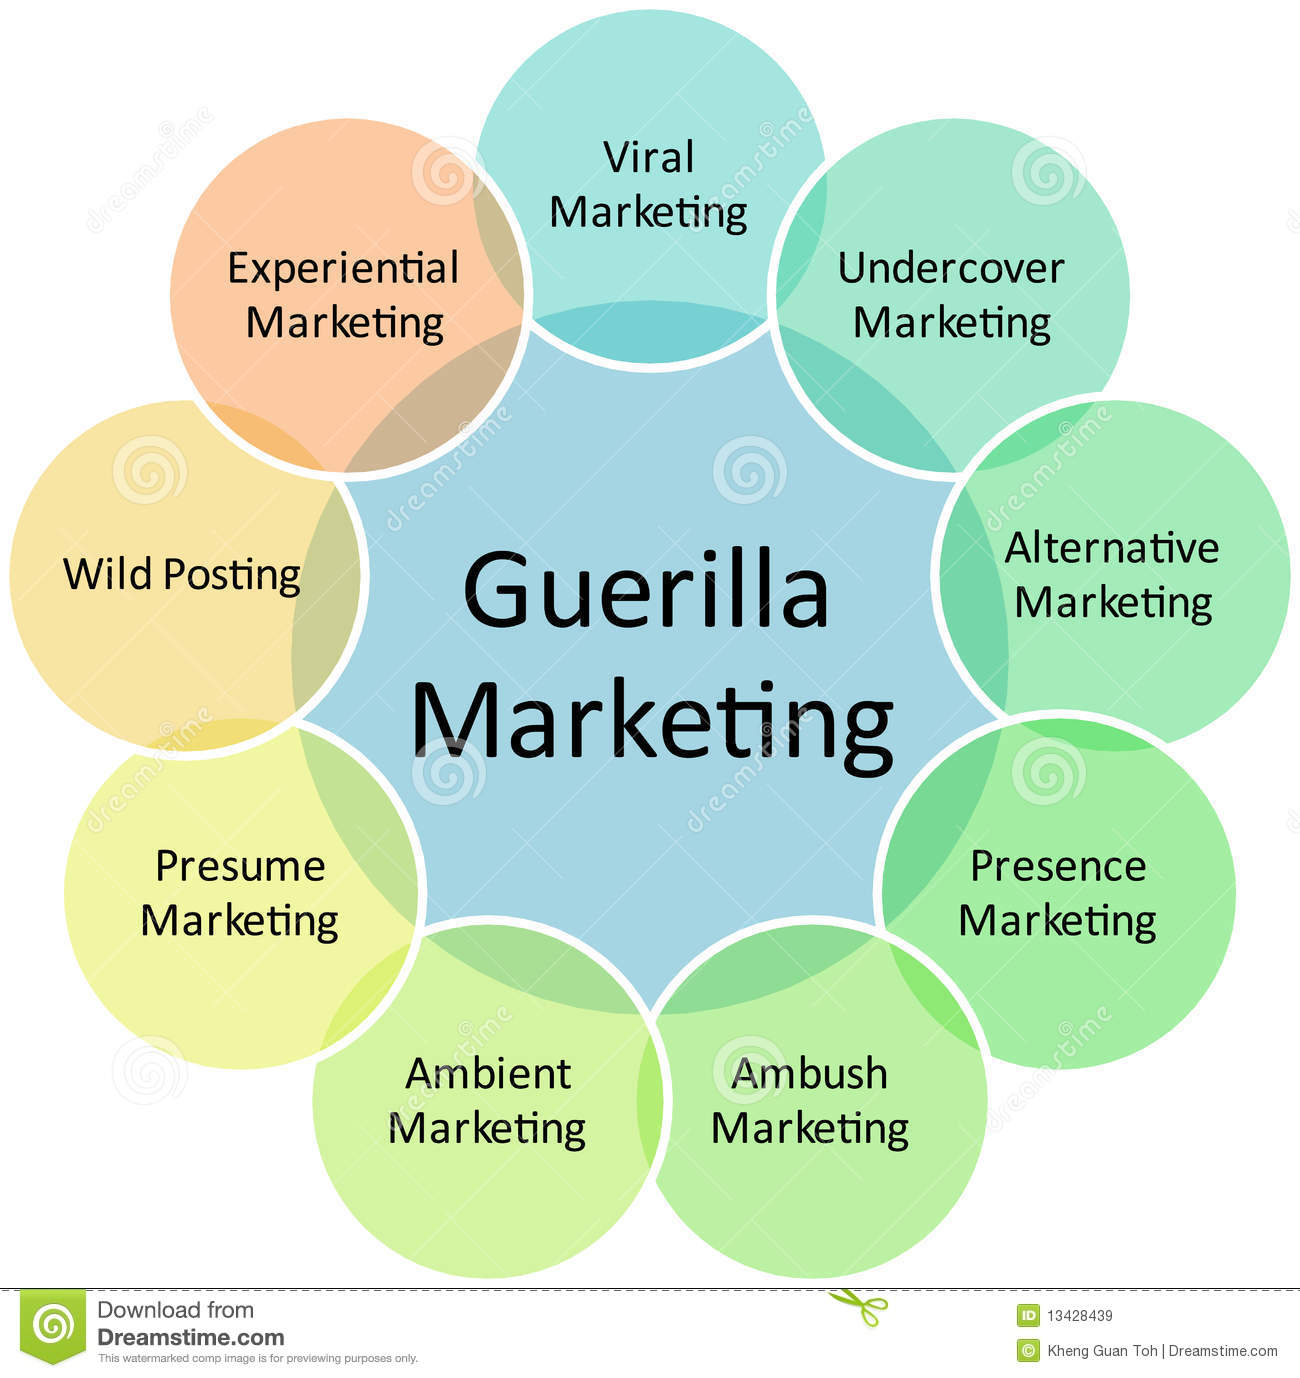 guerilla-marketing-business-diagram-13428439.jpg